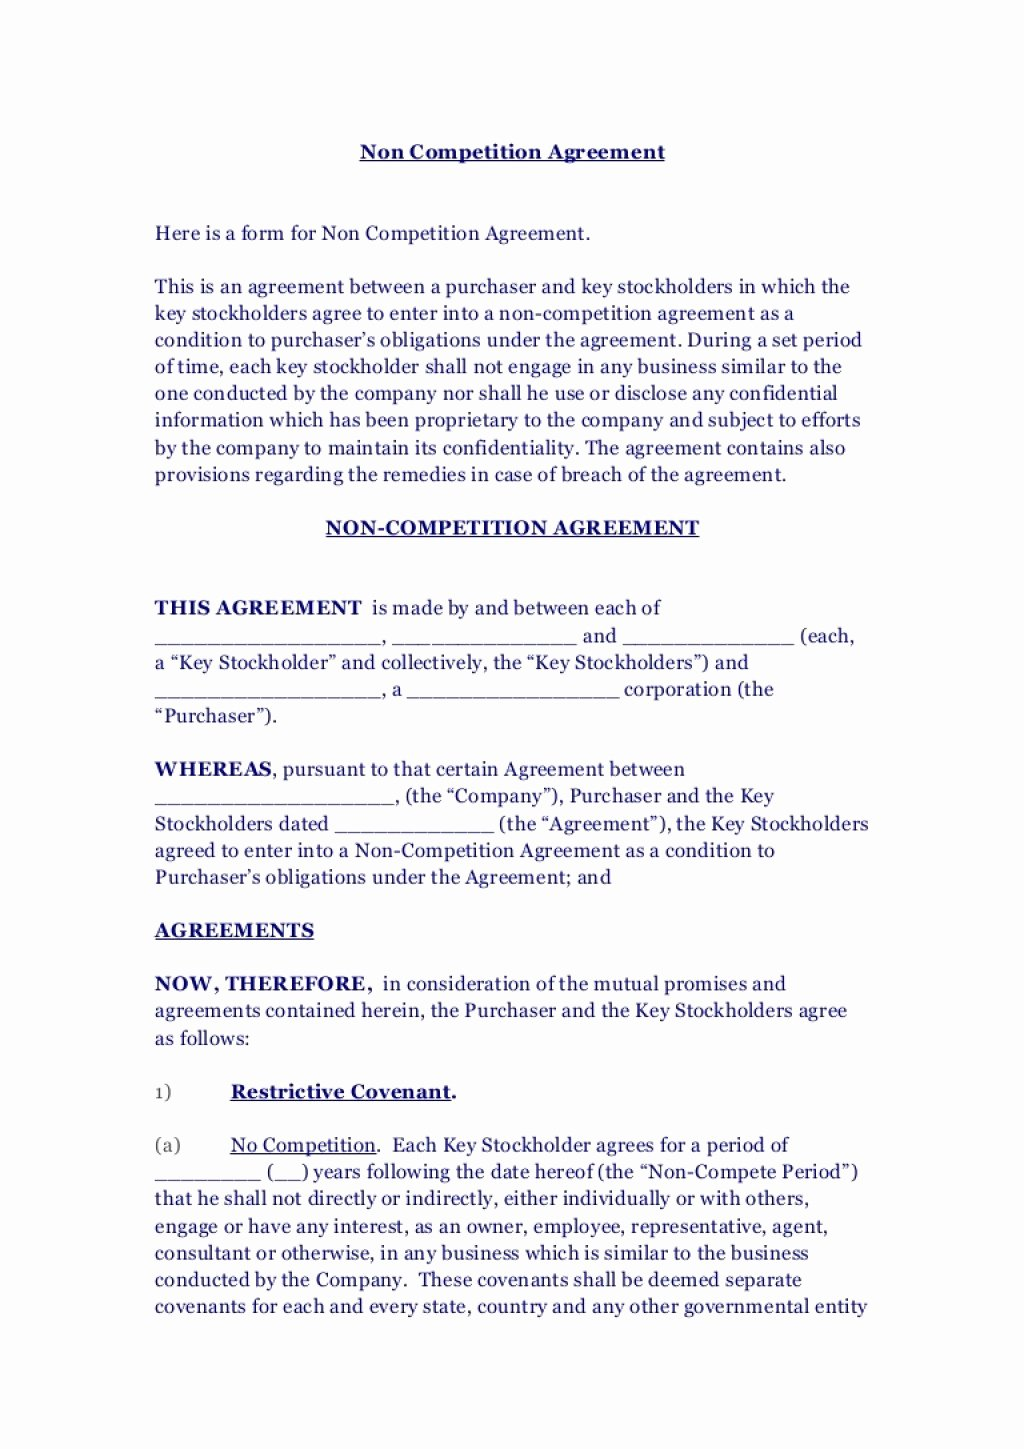 Postnuptial Agreement Florida Sample New Non Pete Agreement Texas Sample if Terminated